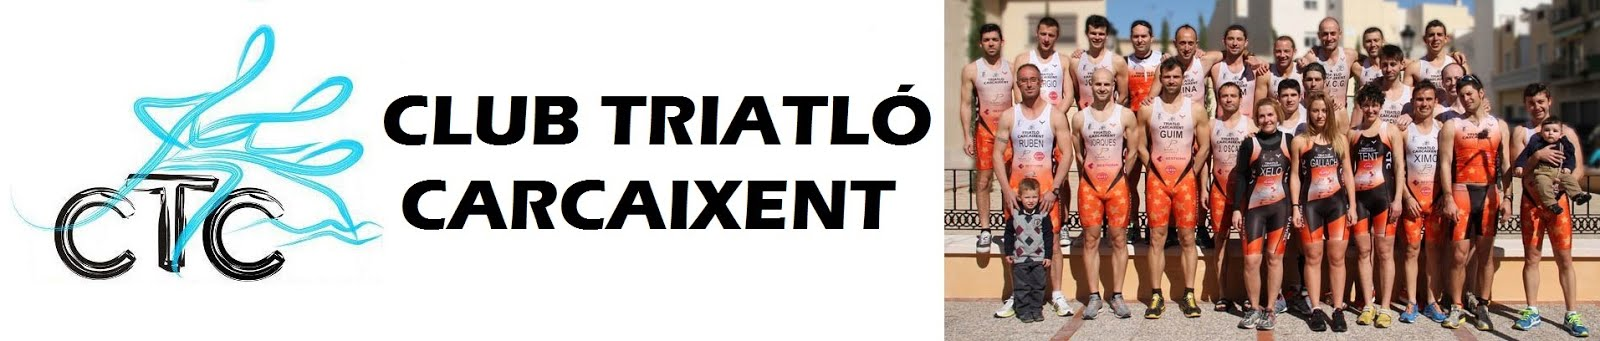 CLUB TRIATLO CARCAIXENT